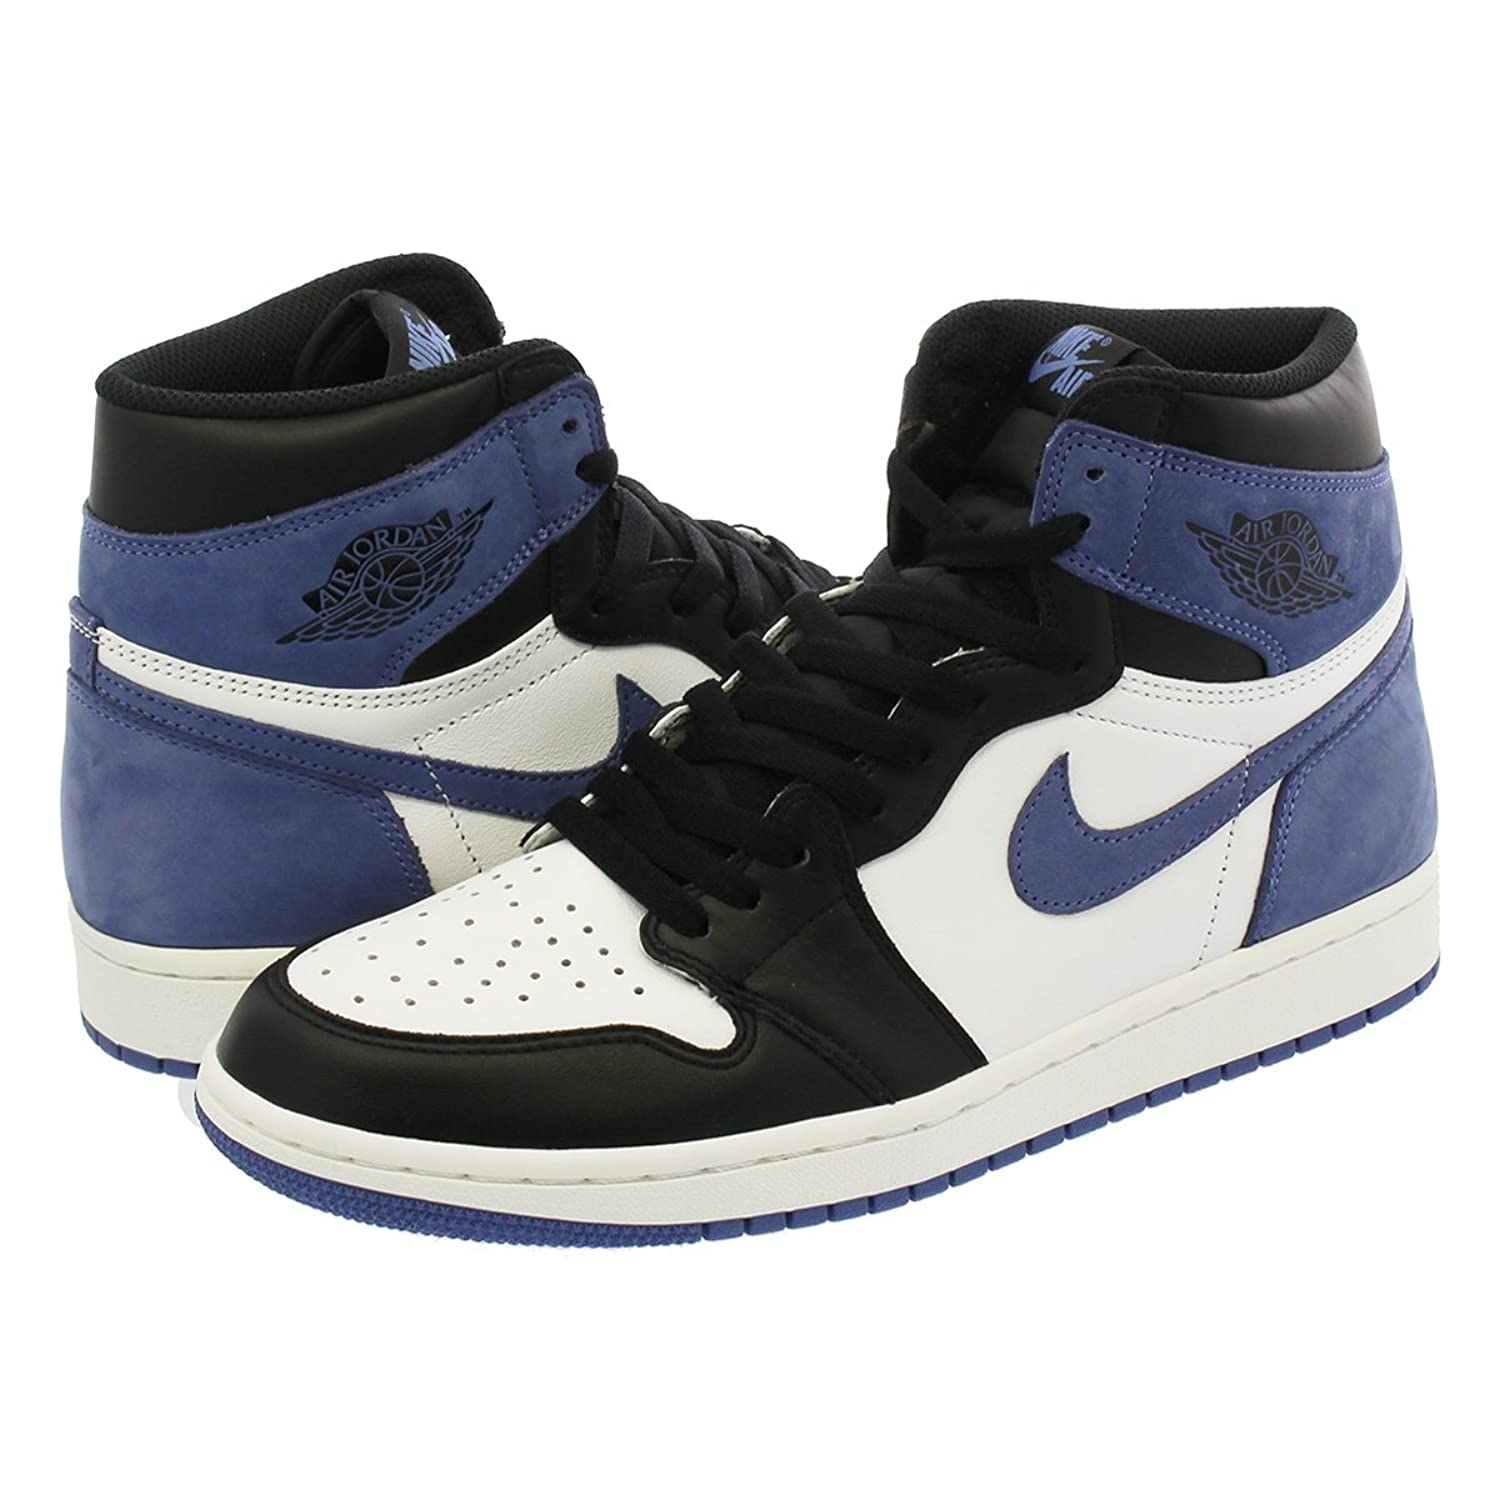 [ナイキ] NIKE AIR JORDAN 1 RETRO HIGH OG SUMMIT WHITE/BLUE MOON/BLACK 【HAND IN THE GAME COLLECTION】【25.0cm~28.5cm】 [並行輸入品] B07F1VSX1N